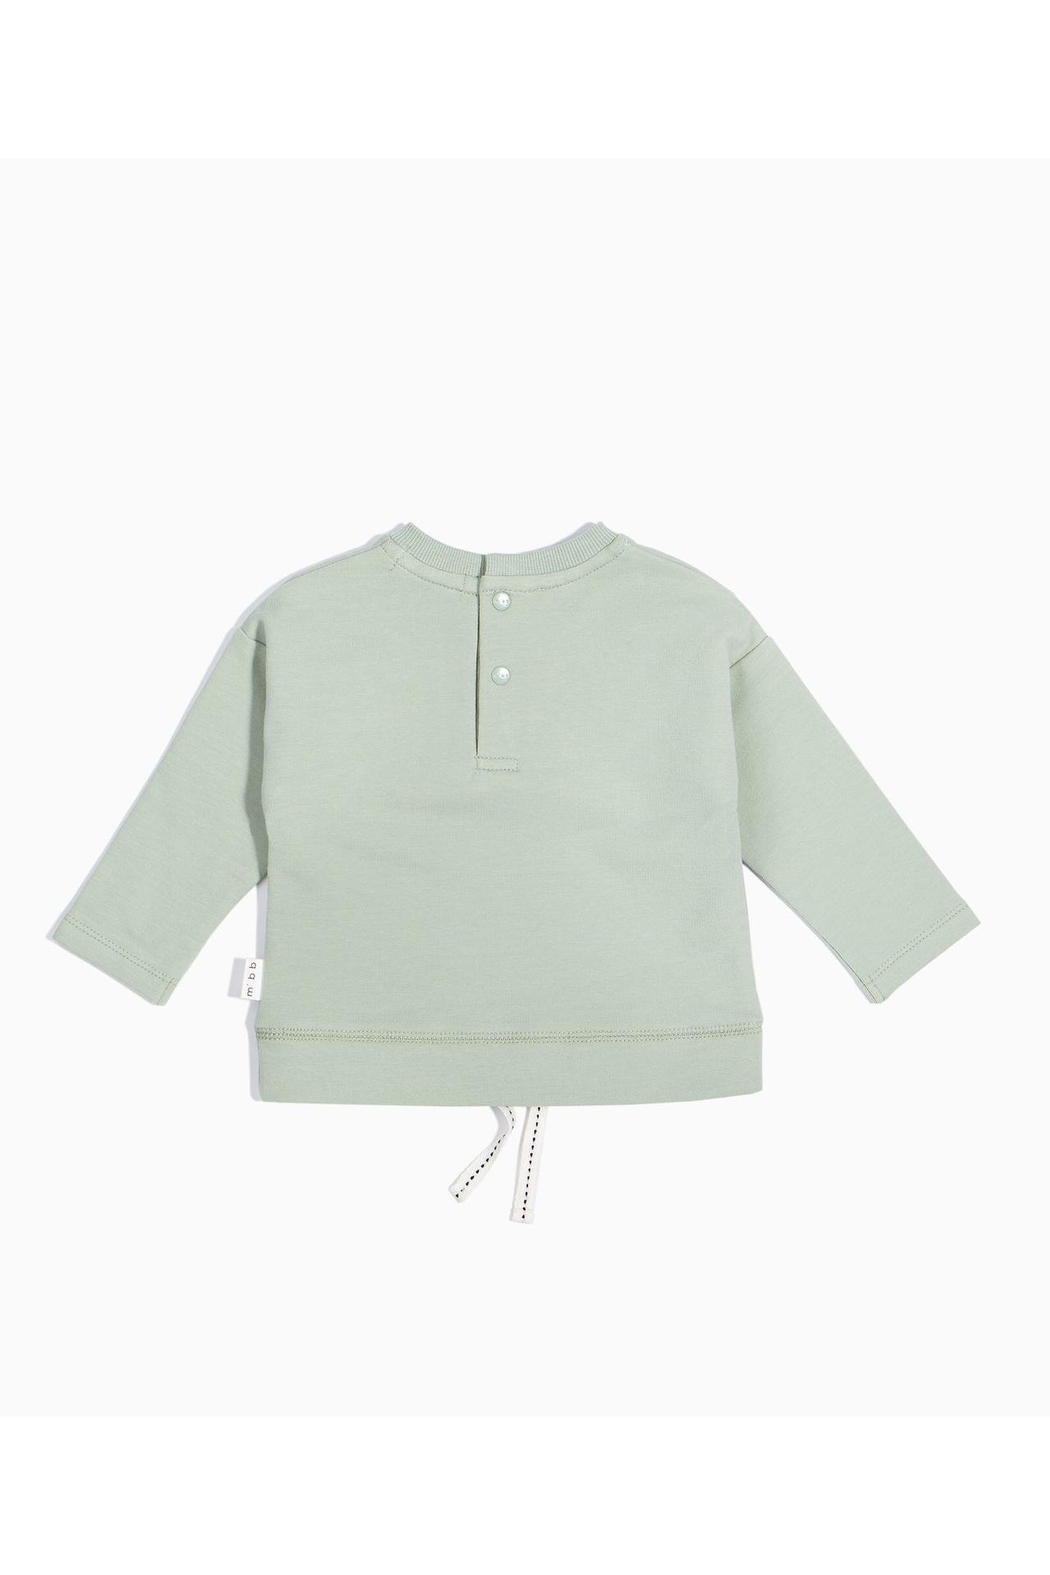 Miles Baby Painter Drawstring Sweatshirt - Front Full Image